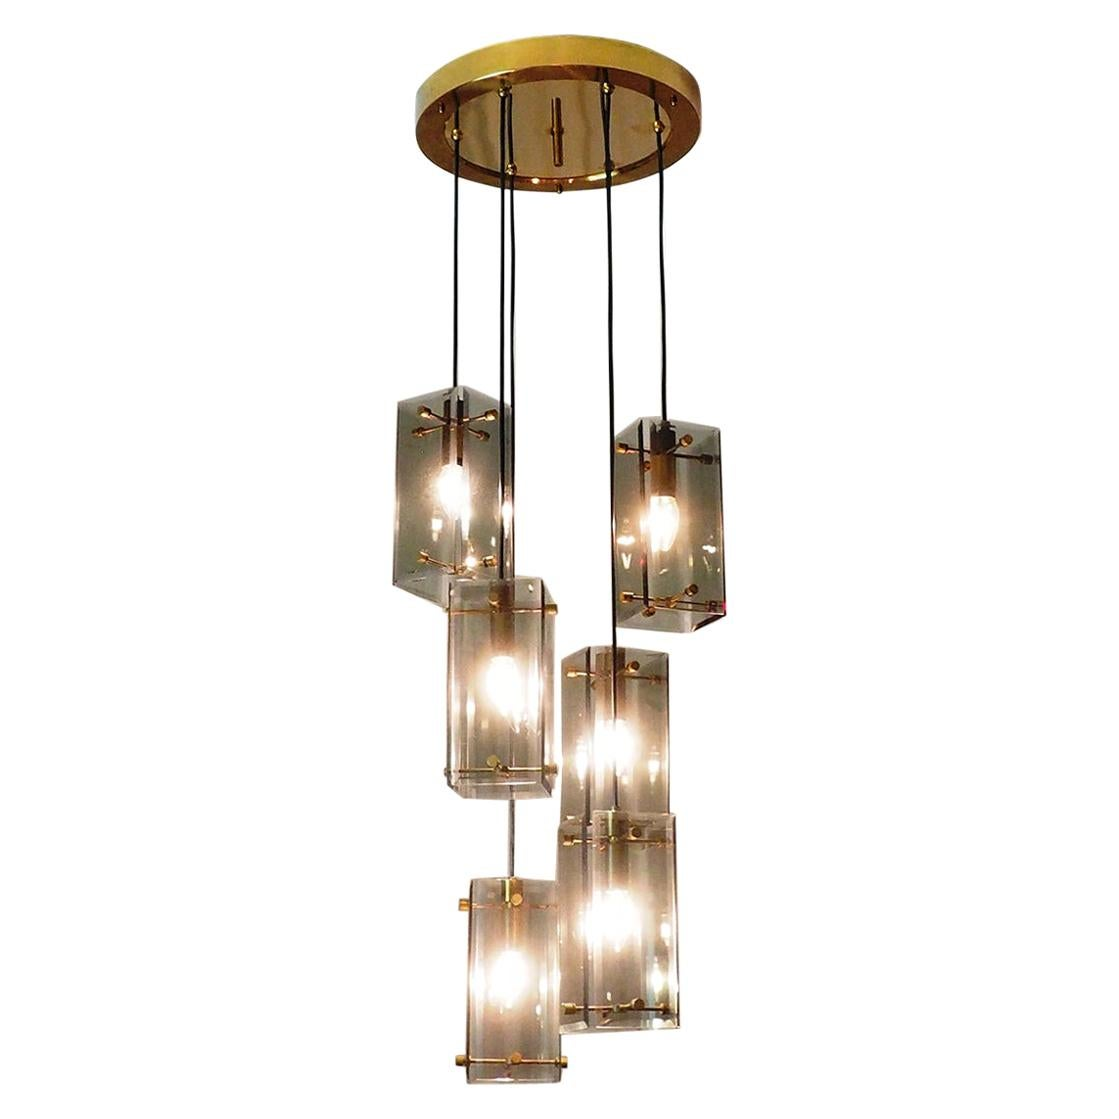 Midcentury Glass and Brass Italian Chandelier Attributed to Fontana Arte, 1960s